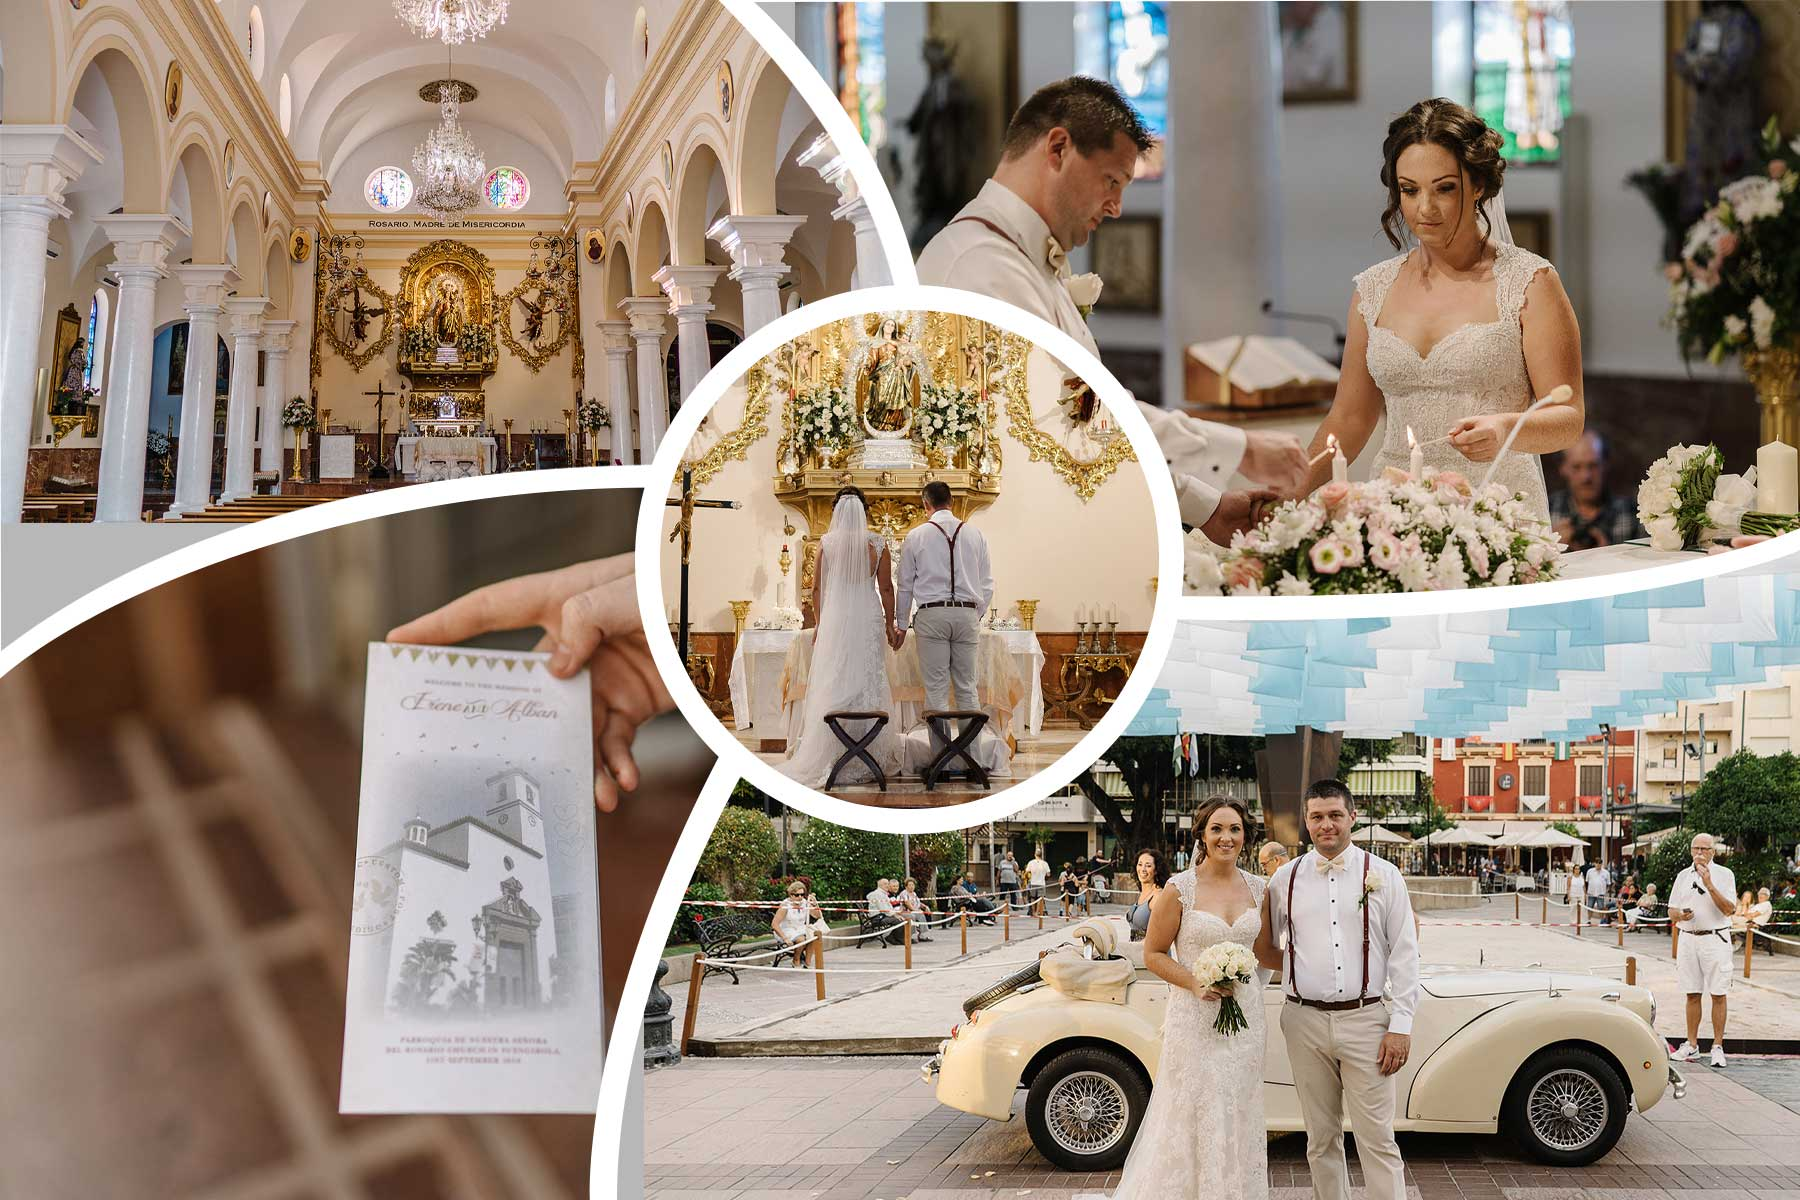 Catholic wedding in Spain